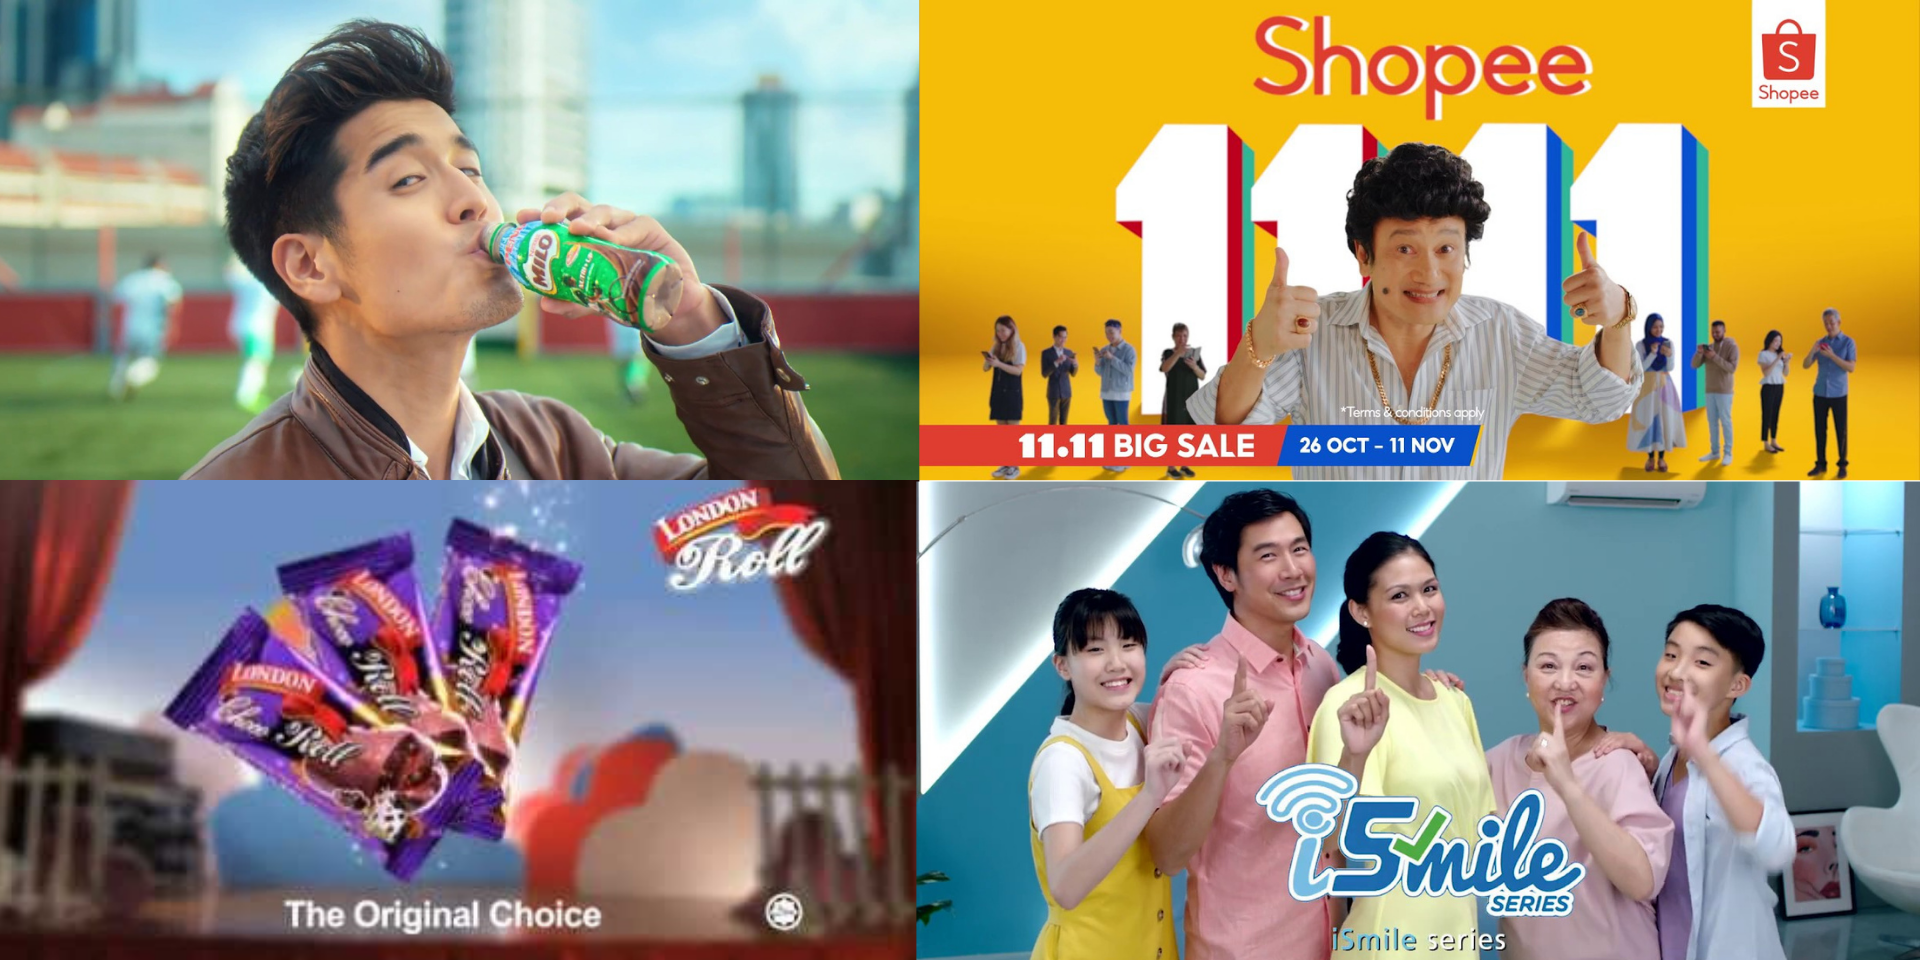 8 Singapore ad jingles that we can't get out of our heads